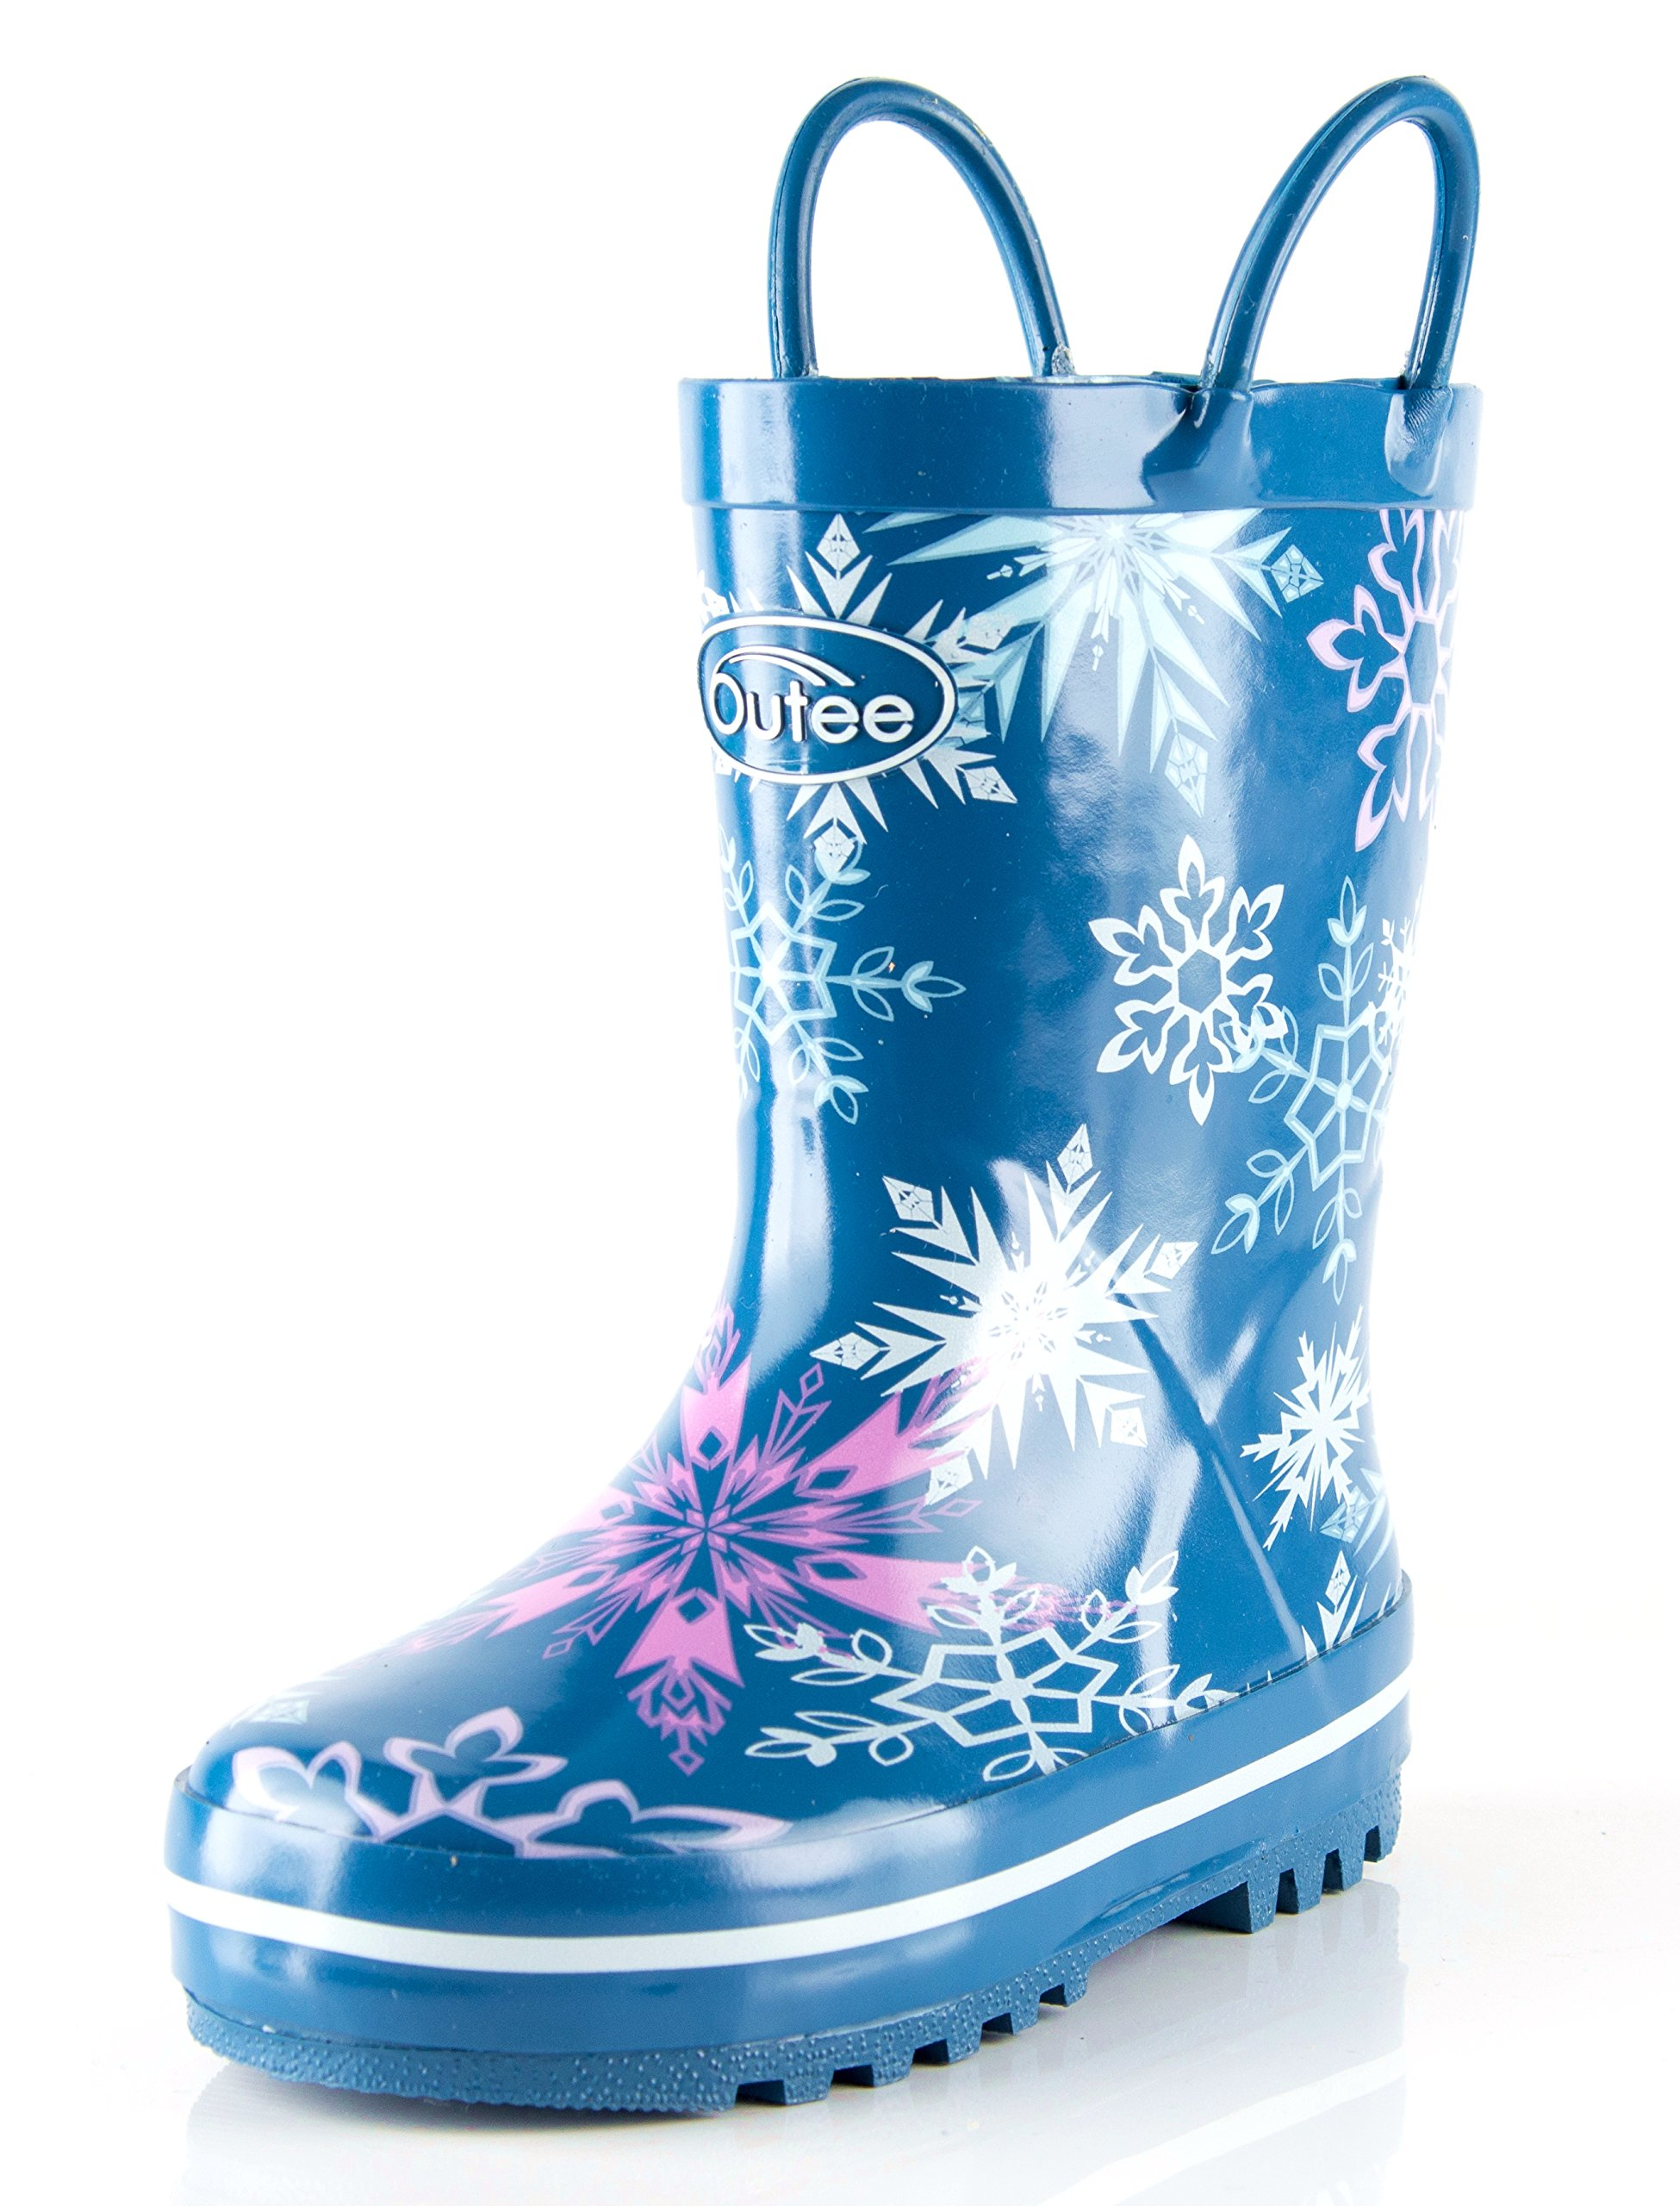 Outee Toddler Girls Kids Rain Boots Rubber Waterproof Boots Blue Frozen Snow Cute Print with Easy-On Handles Classic Comfortable Removable Insoles Anti-Slippery Durable Sole with Grip (Size 7,Blue) by Outee (Image #1)